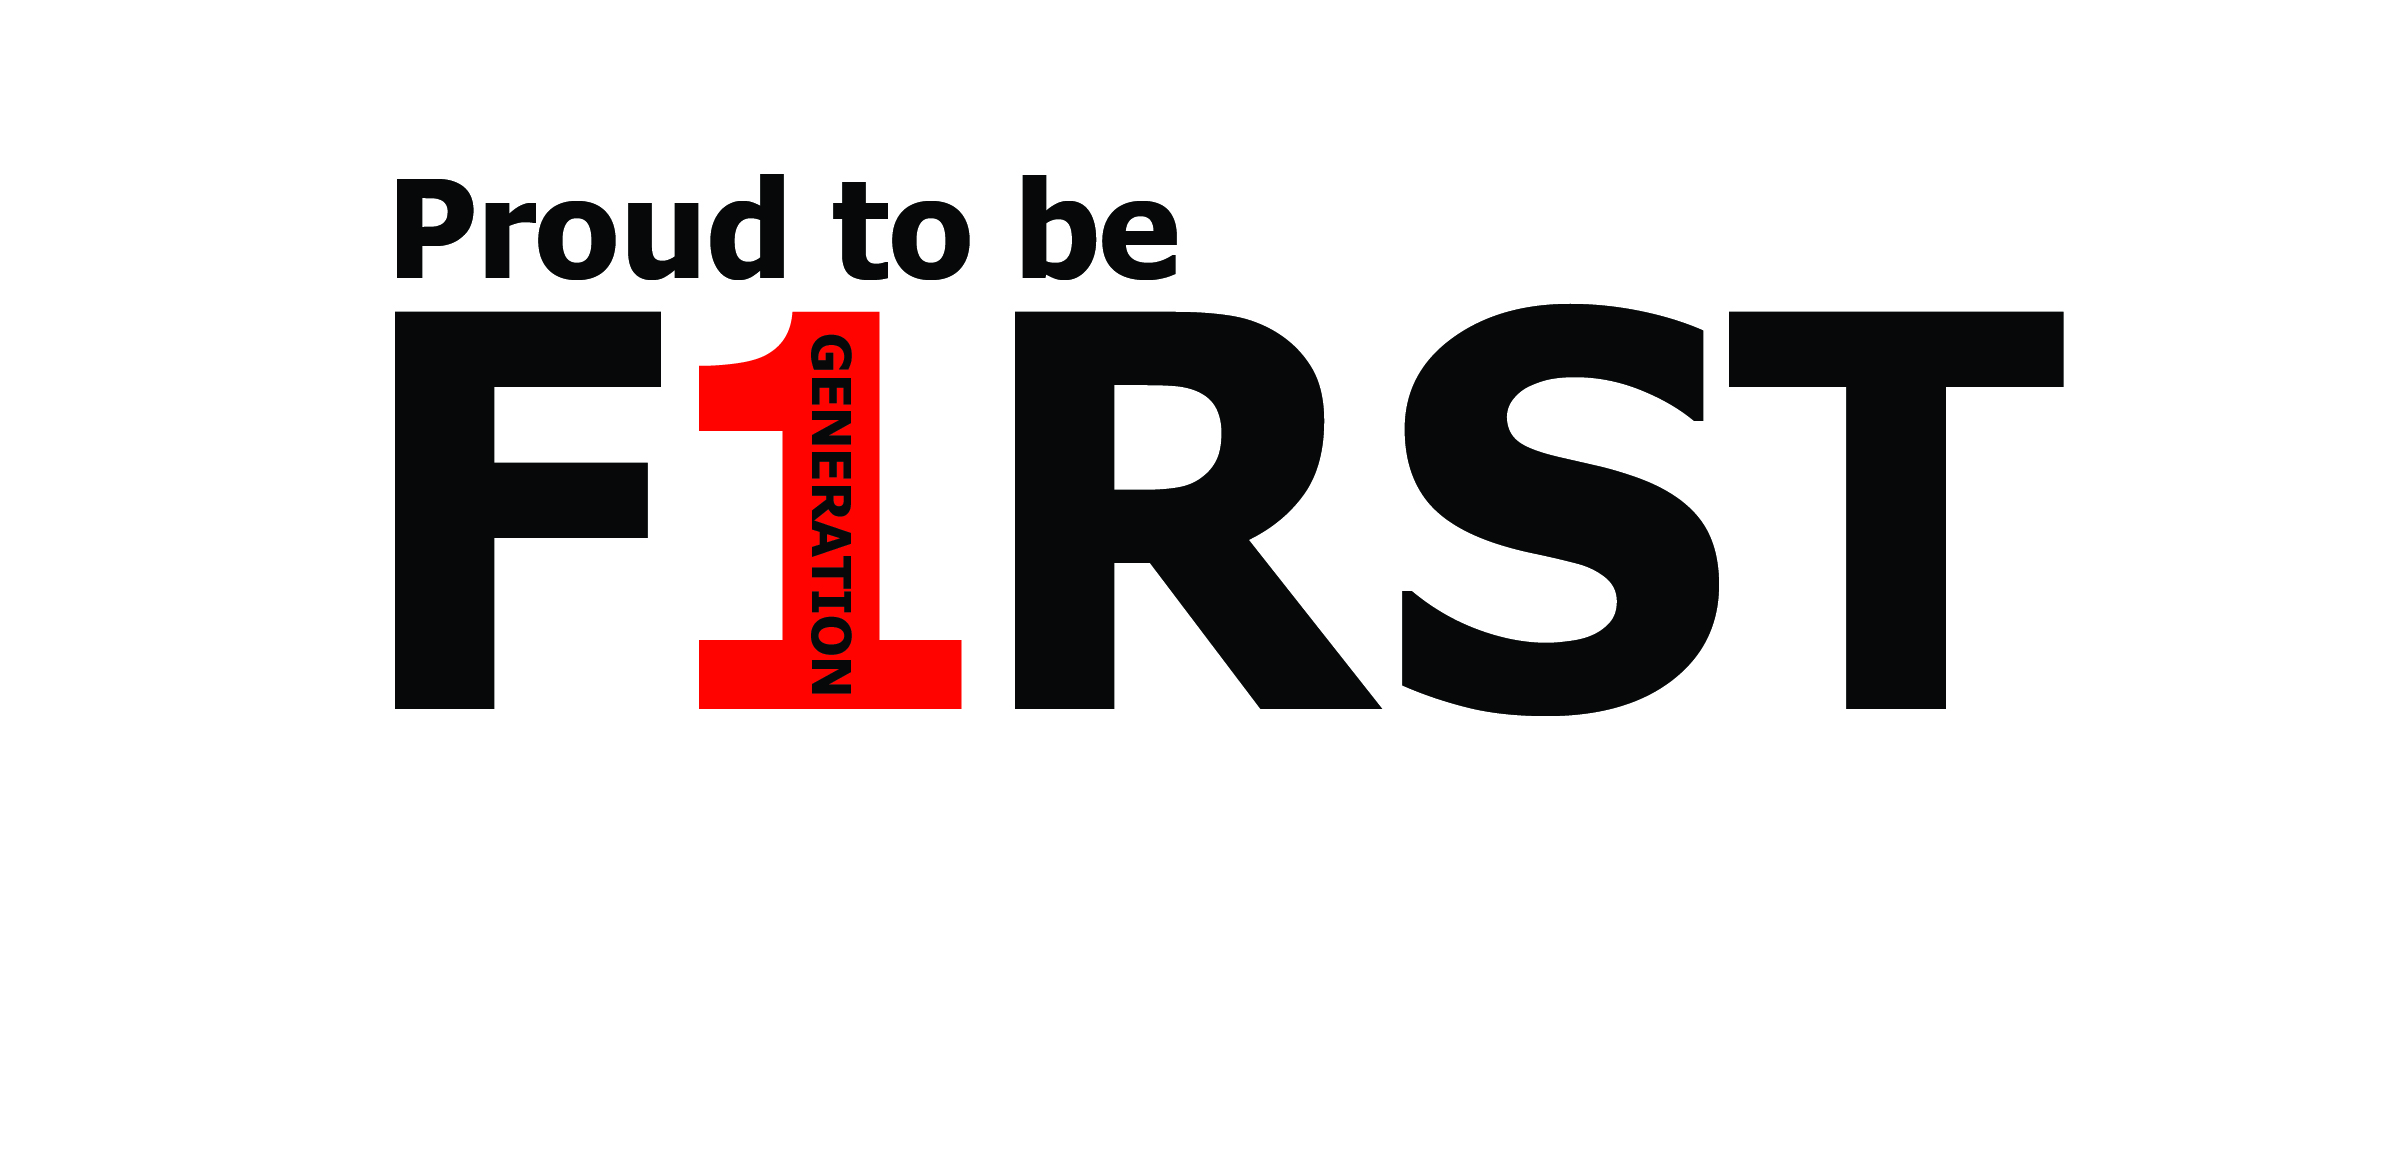 Proud to be First Image